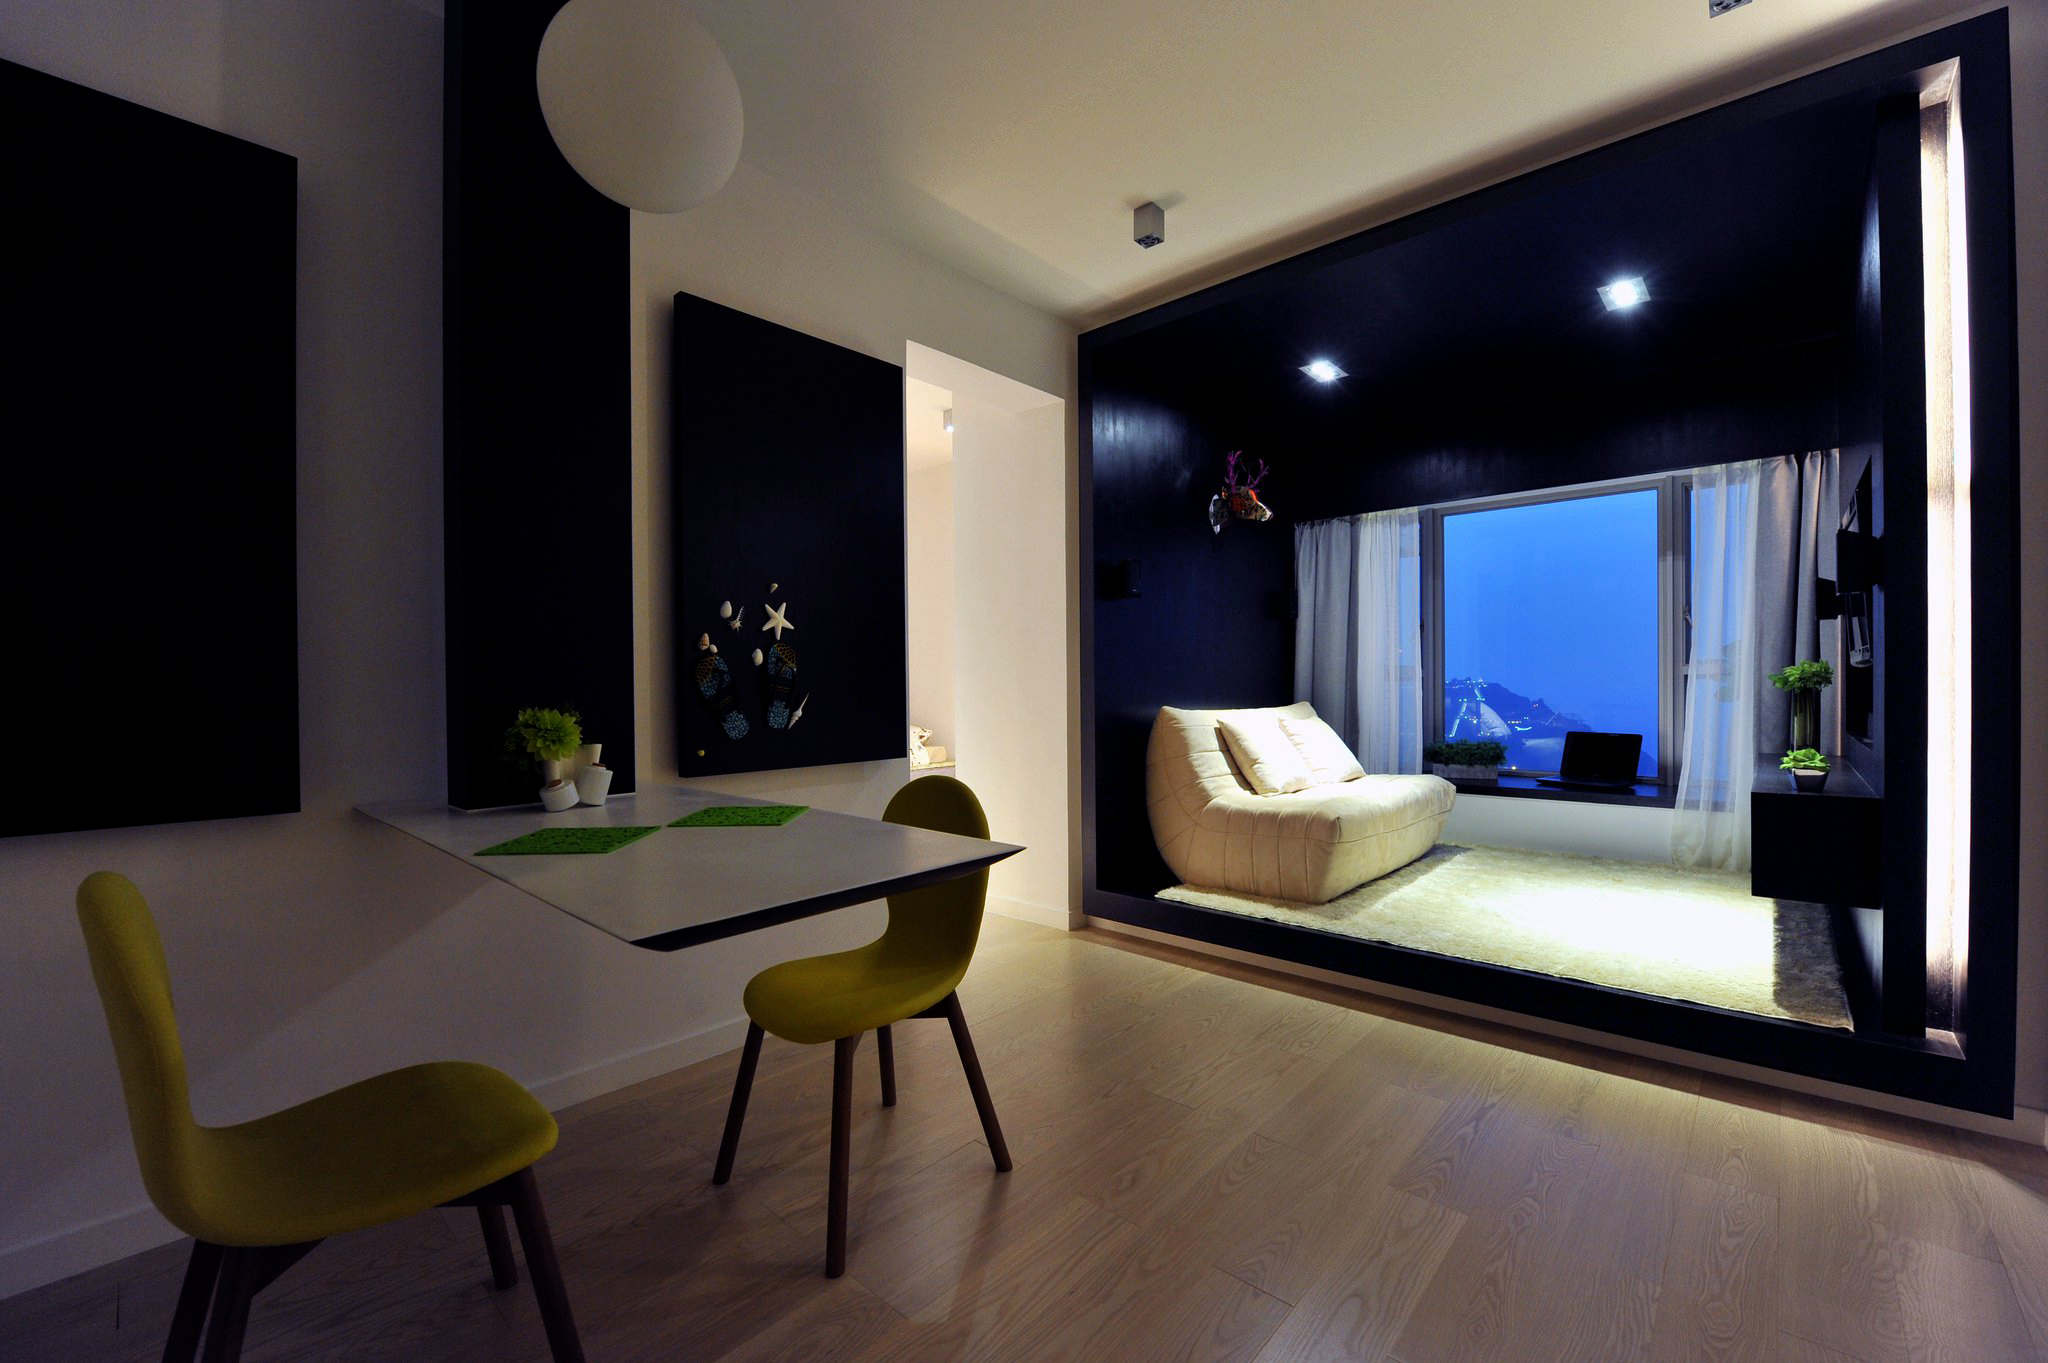 家居設計 Home Design hk 懸浮屋 Floating Home (10)